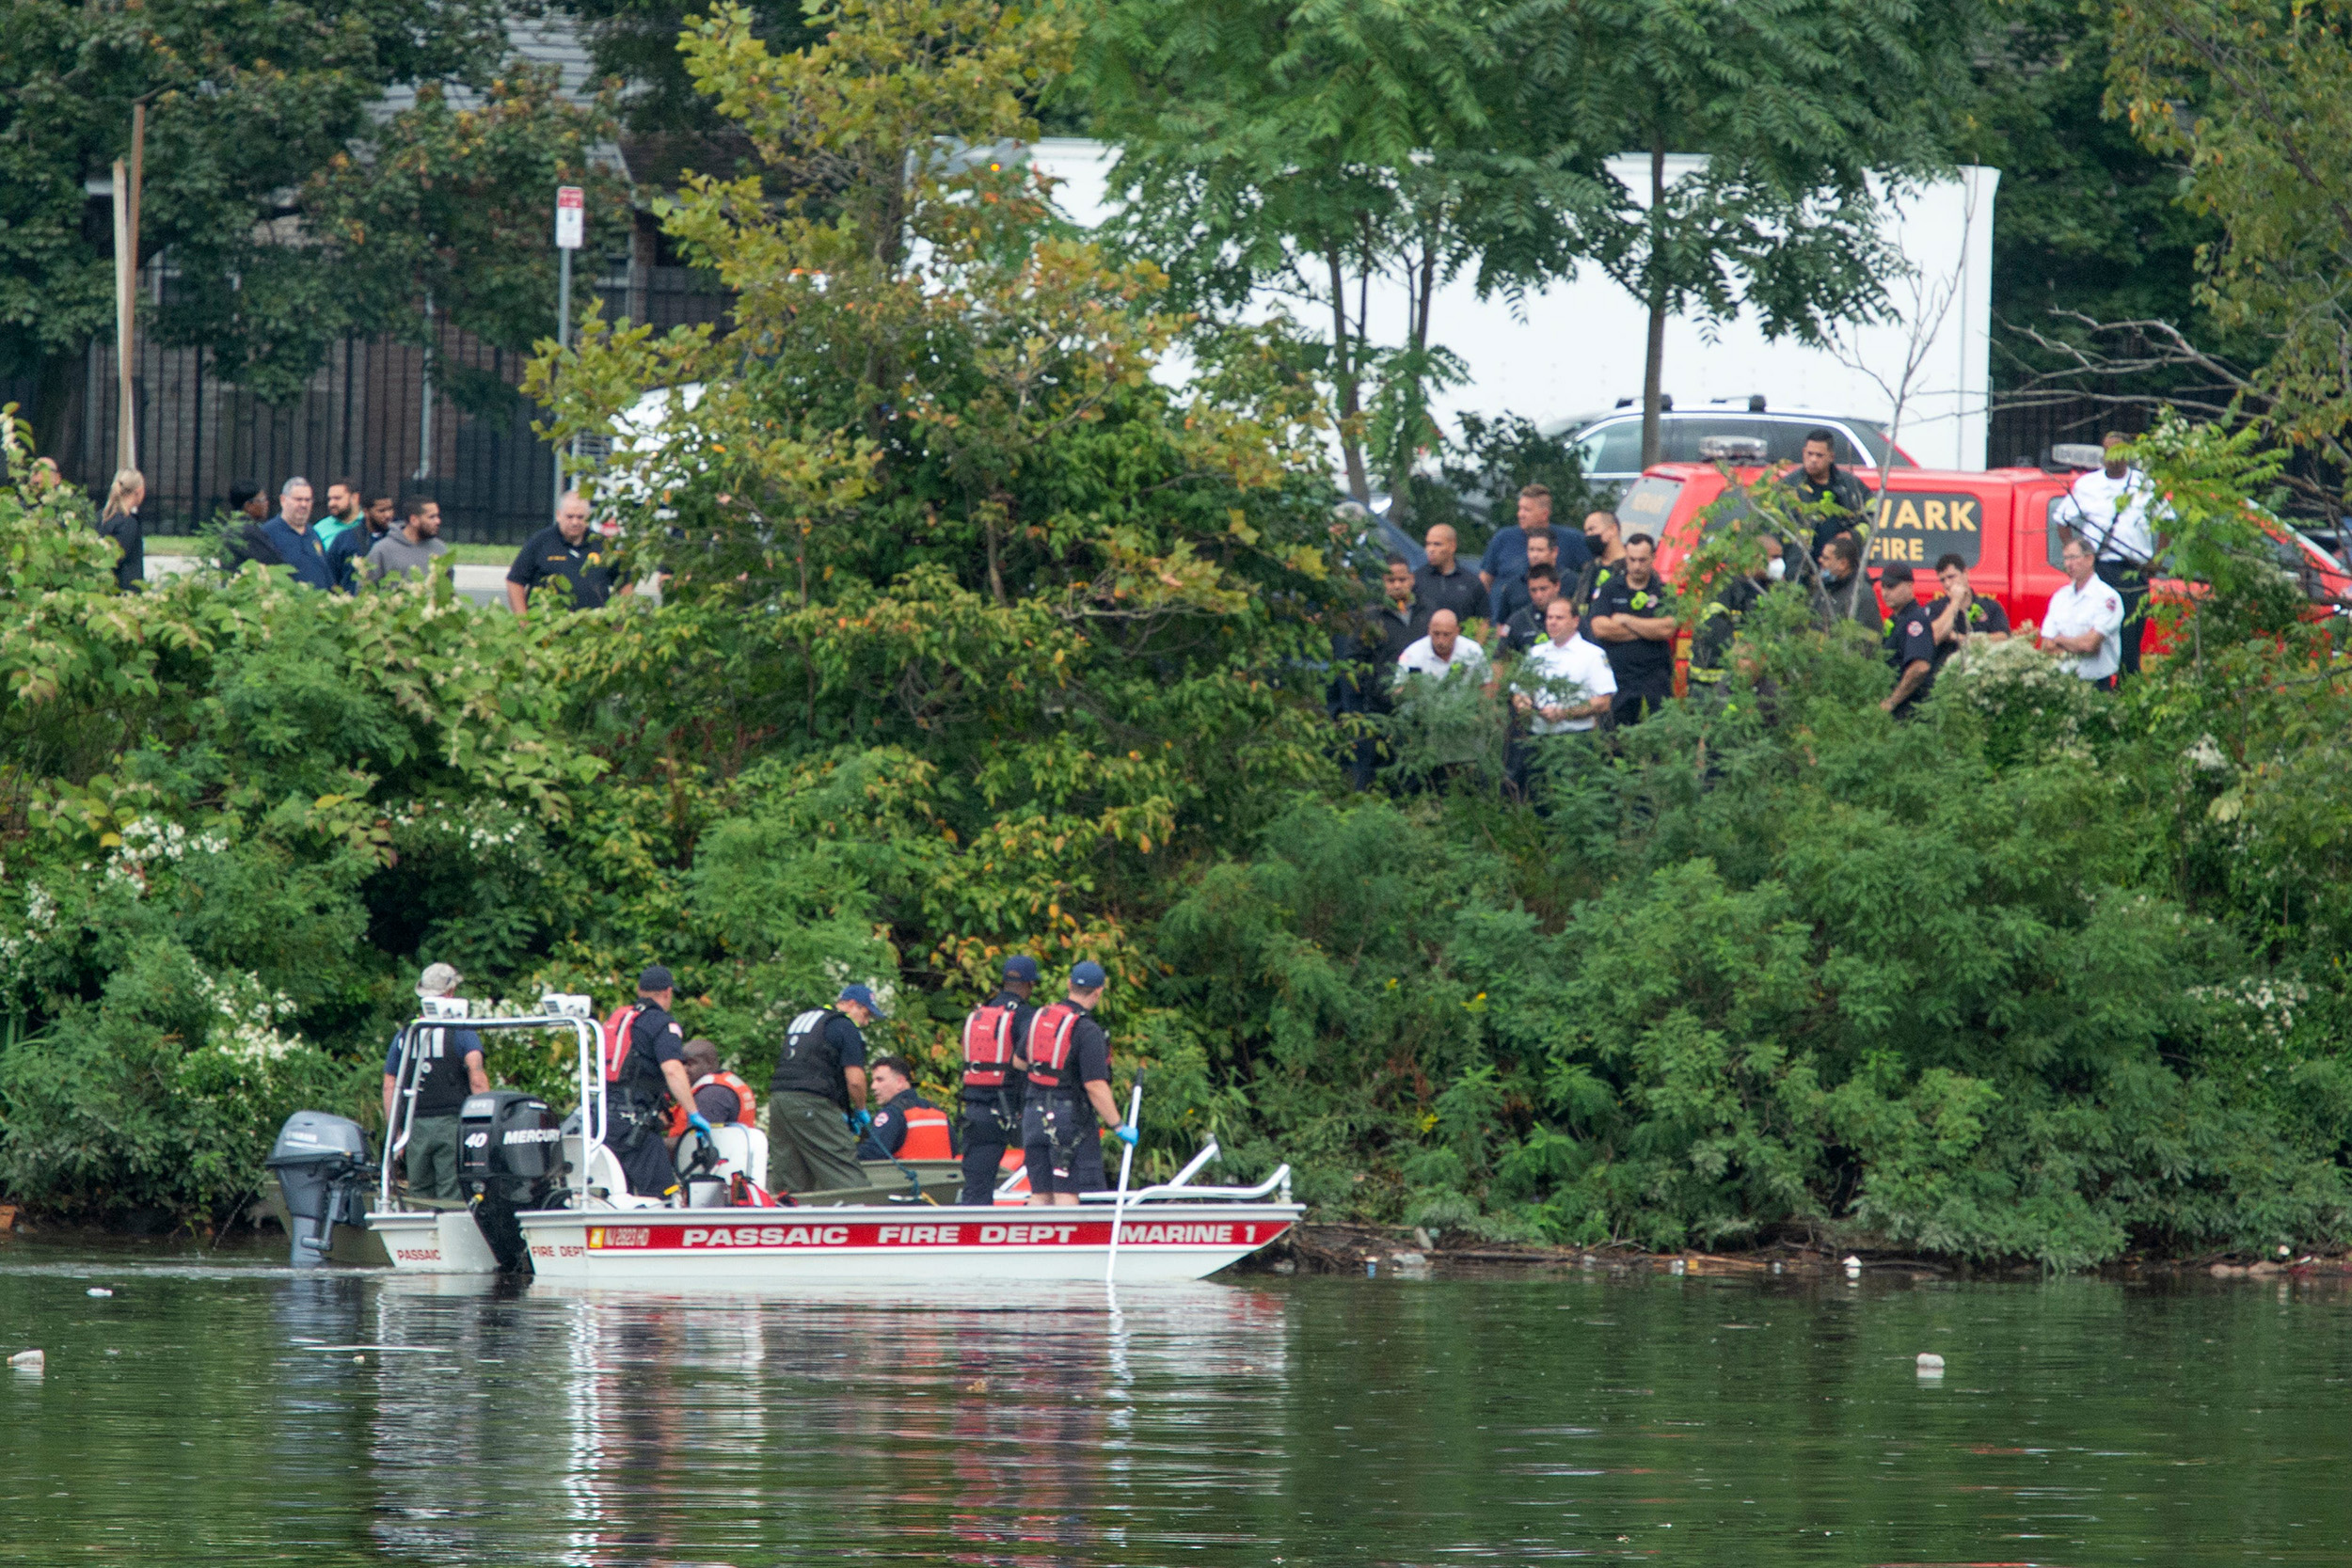 Third body pulled from New Jersey river in search of missing Ida victims